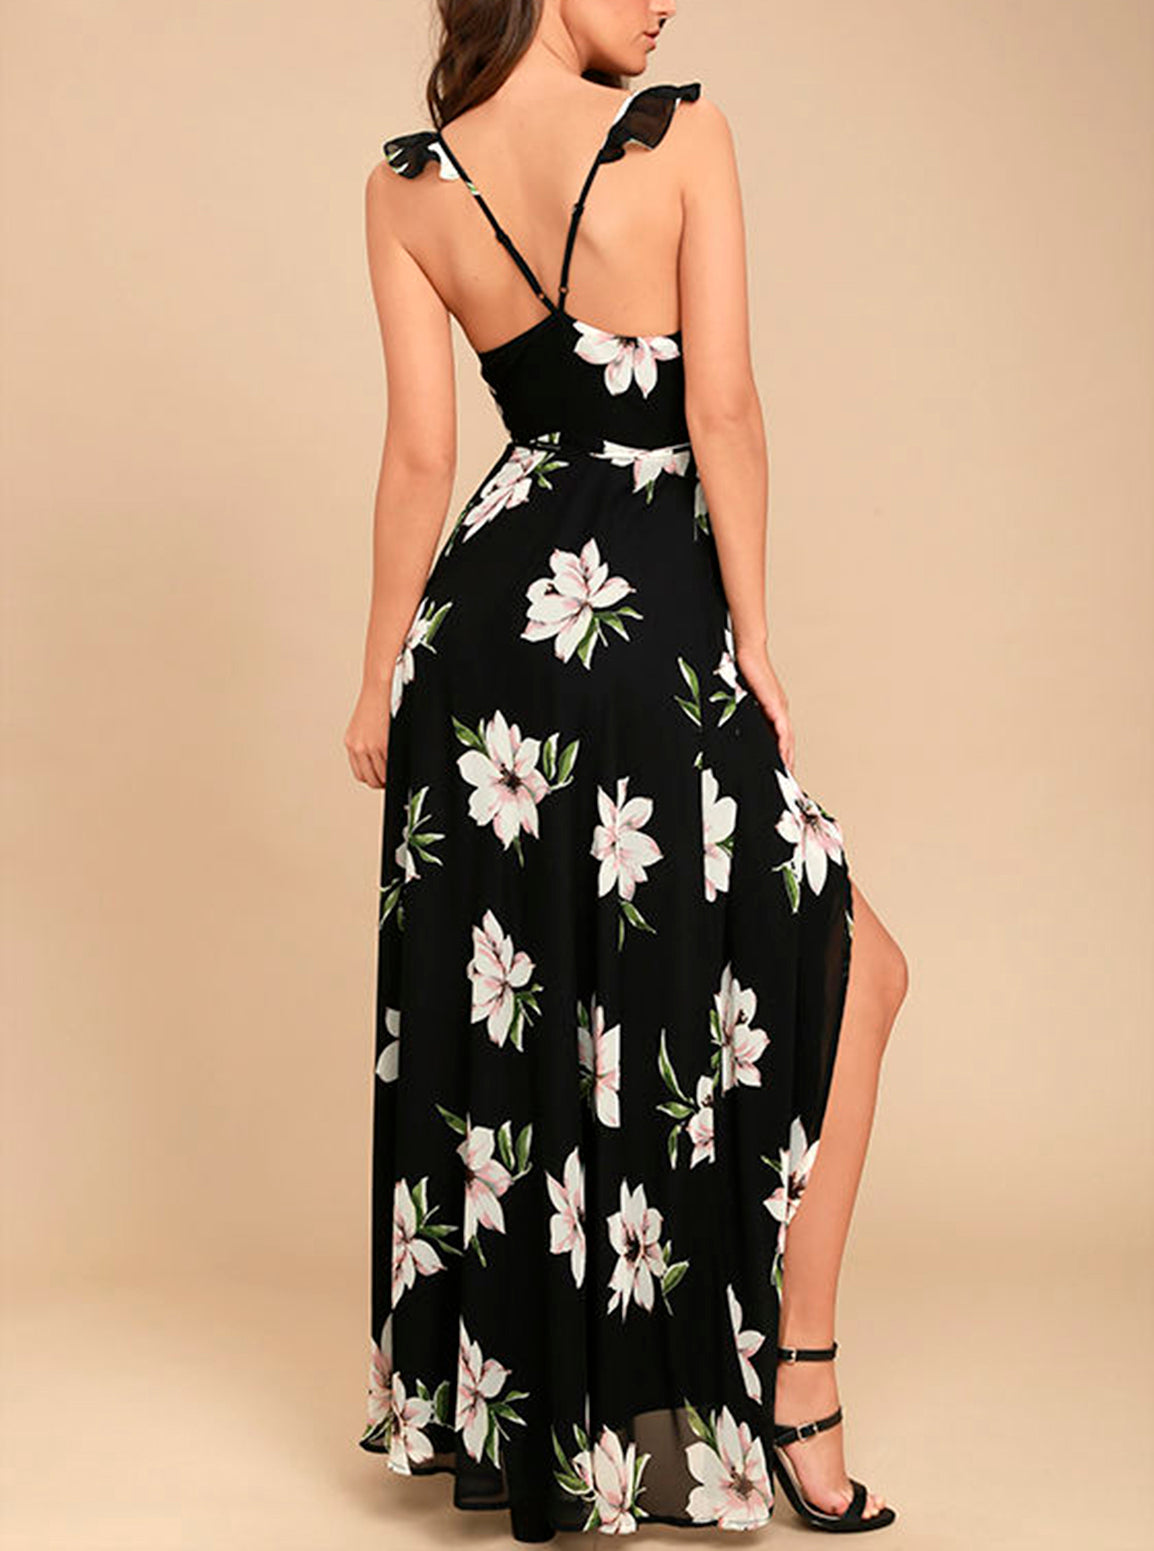 Halter Backless Flowy Summer Maxi Dress